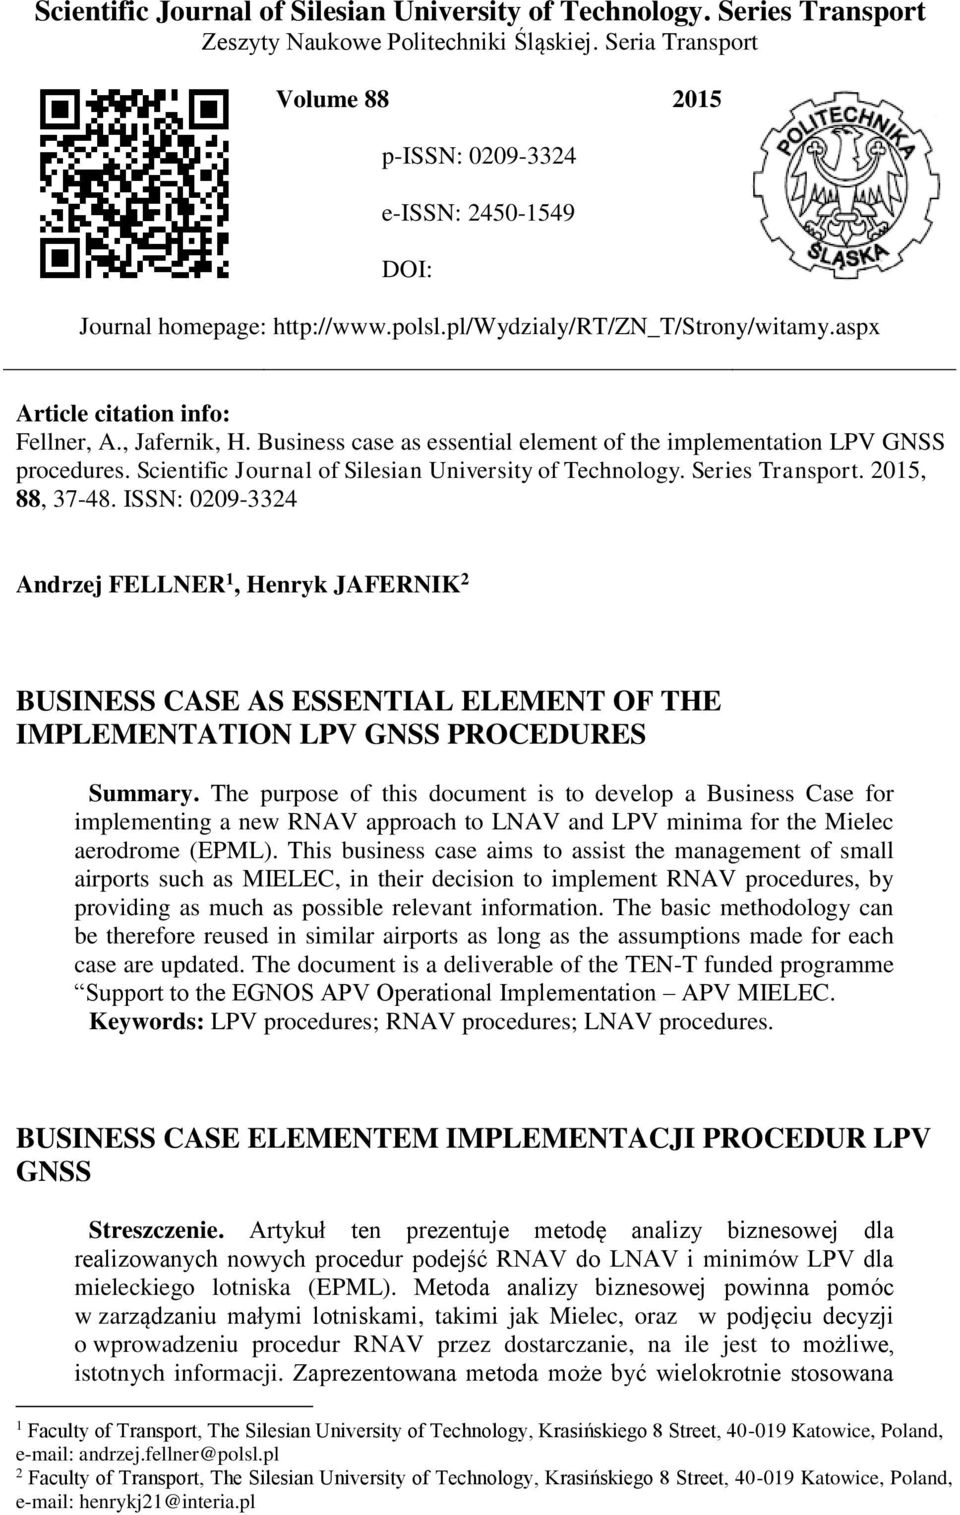 Business case as essential element of the implementation LPV GNSS procedures. Scientific Journal of Silesian University of Technology. Series Transport. 2015, 88, 37-48.